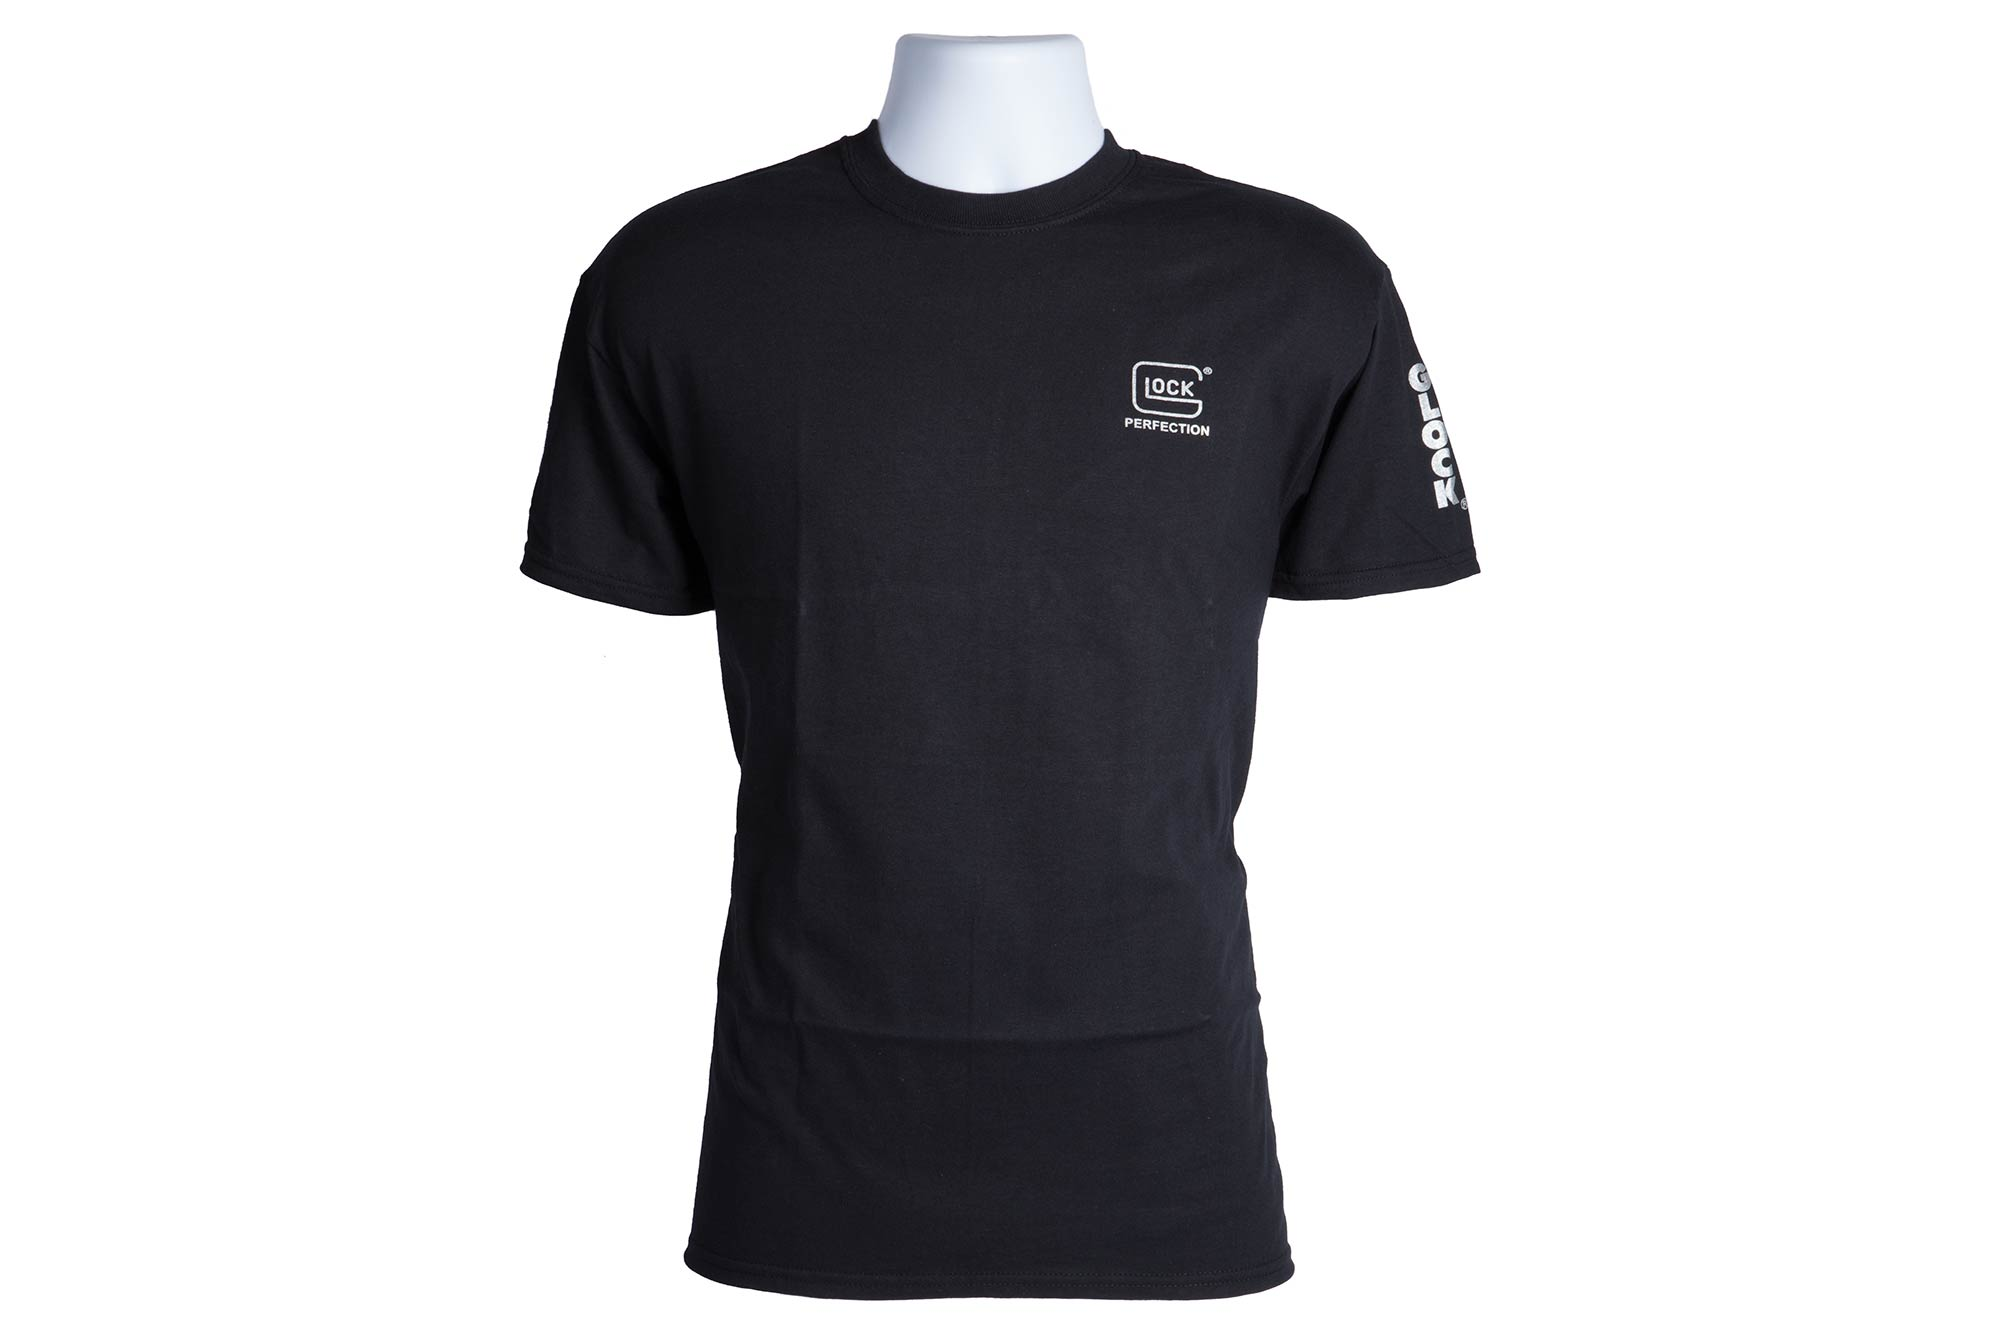 GLOCK Perfection T-shirt - Black -XL